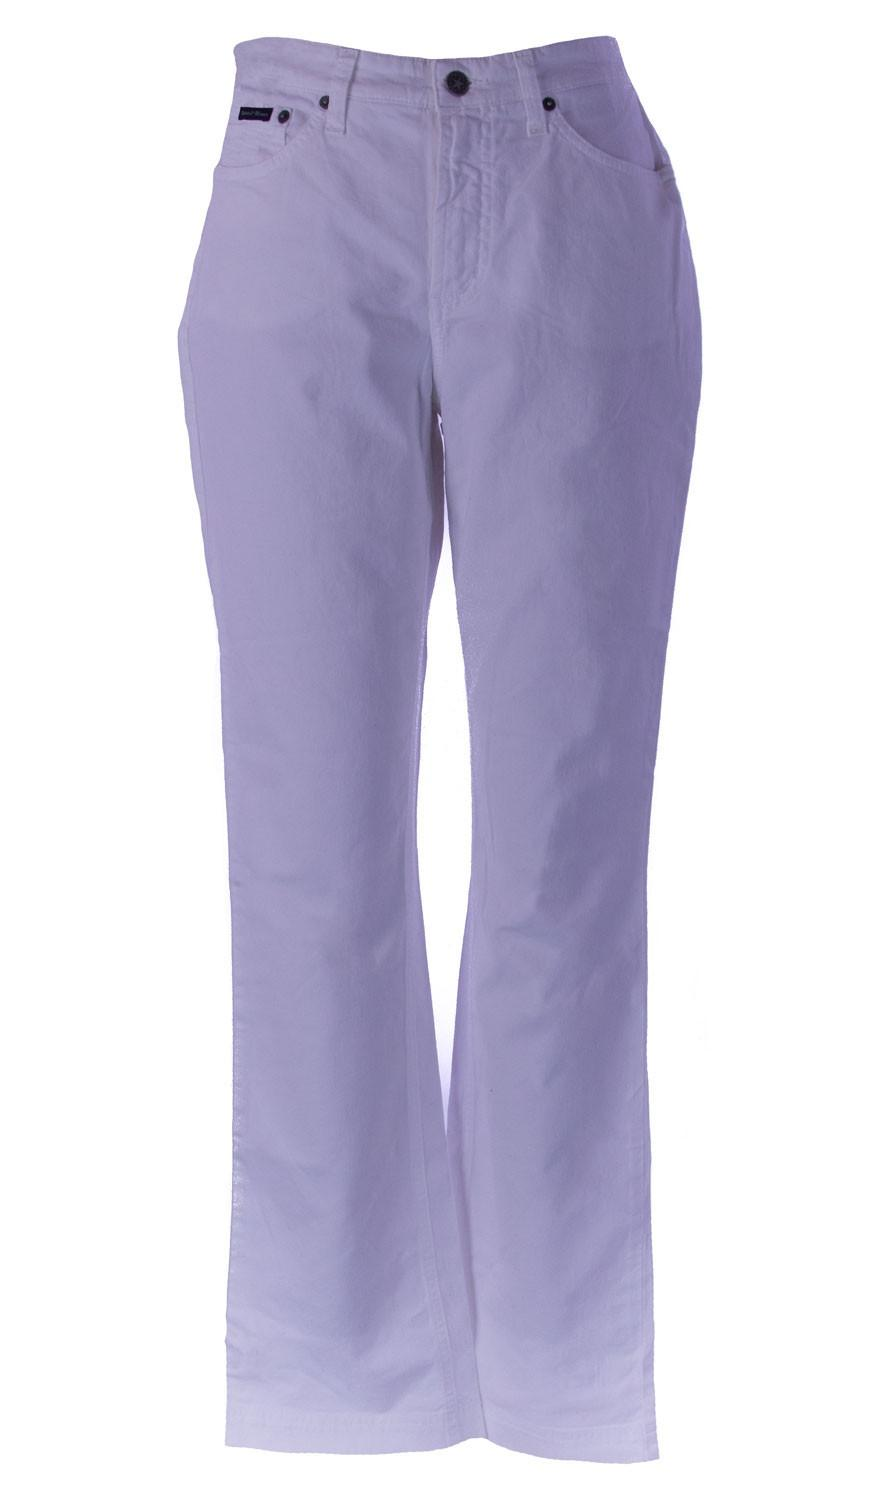 85%OFF Gant Womens White Classic Twill Stretch Jeans 421181 135 ...